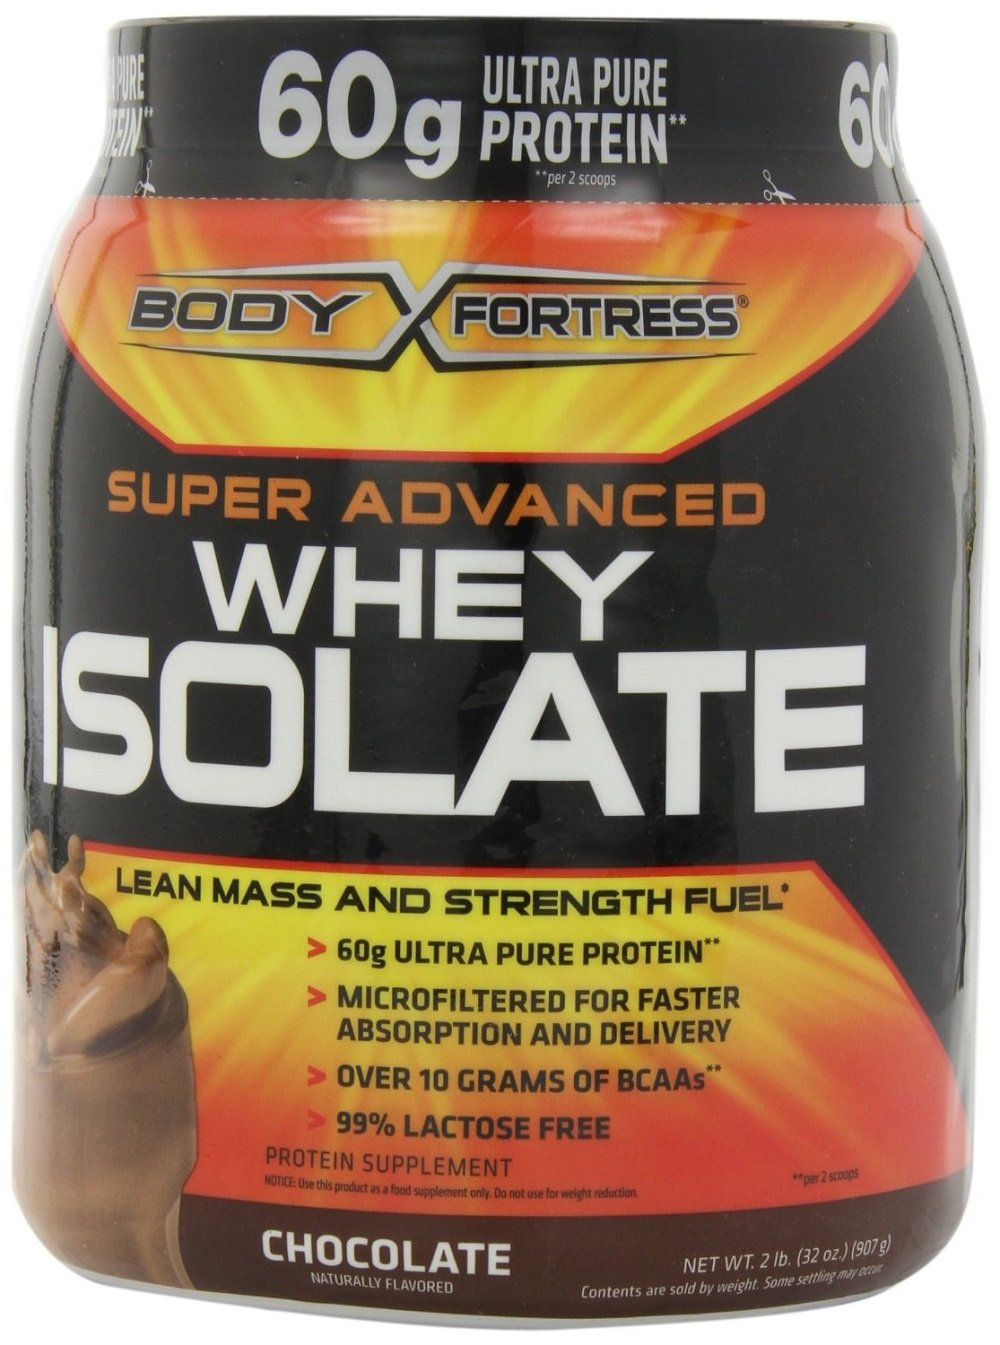 Super Advanced Whey Isolate in Chocolate ...